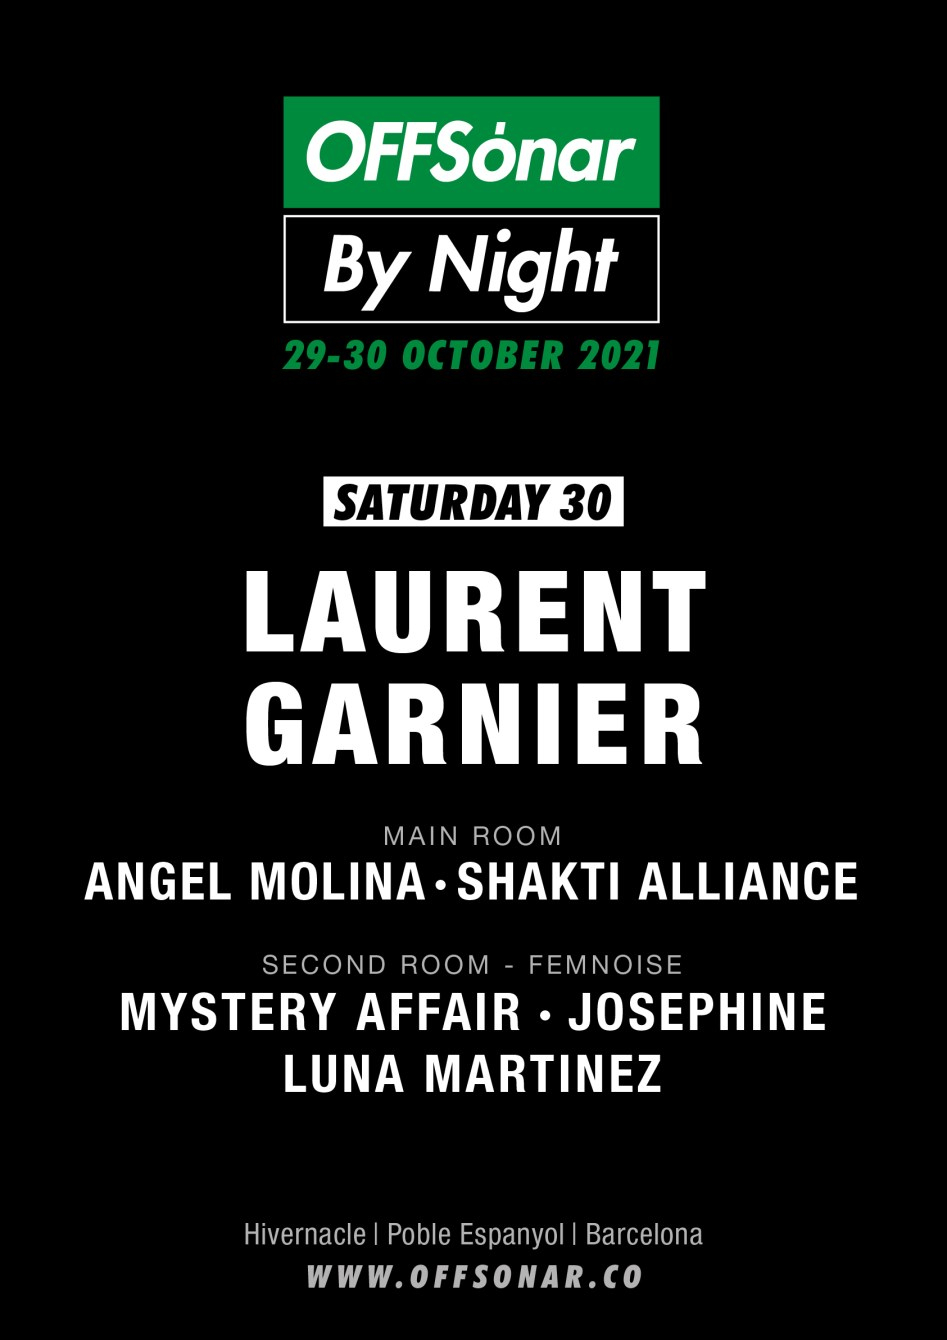 Offsónar by Night with Laurent Garnier, Angel Molina, Shakti Alliance and More - Flyer front